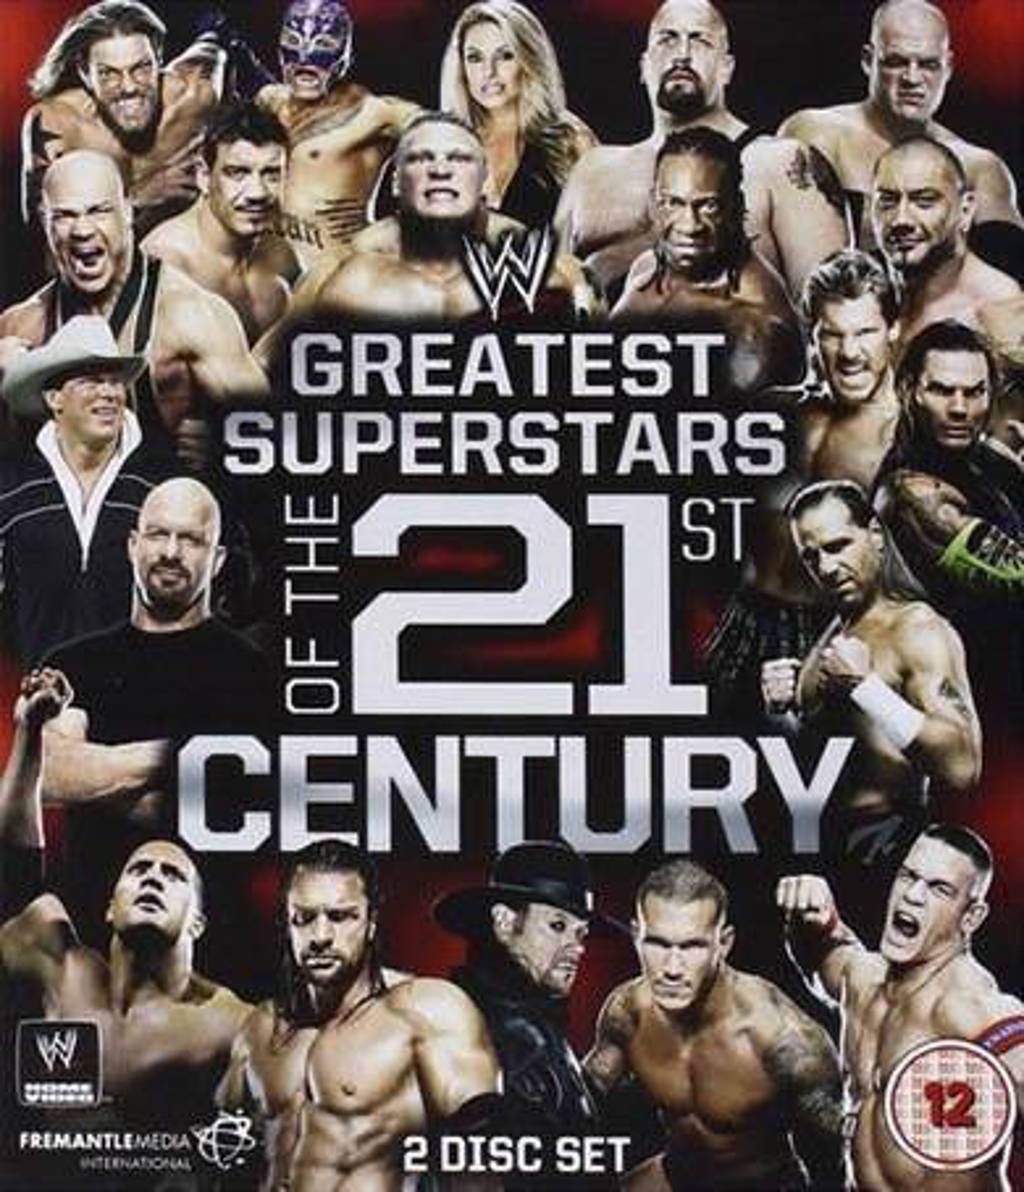 WWE - Greatest Superstars of the 21st Century (Blu-ray)